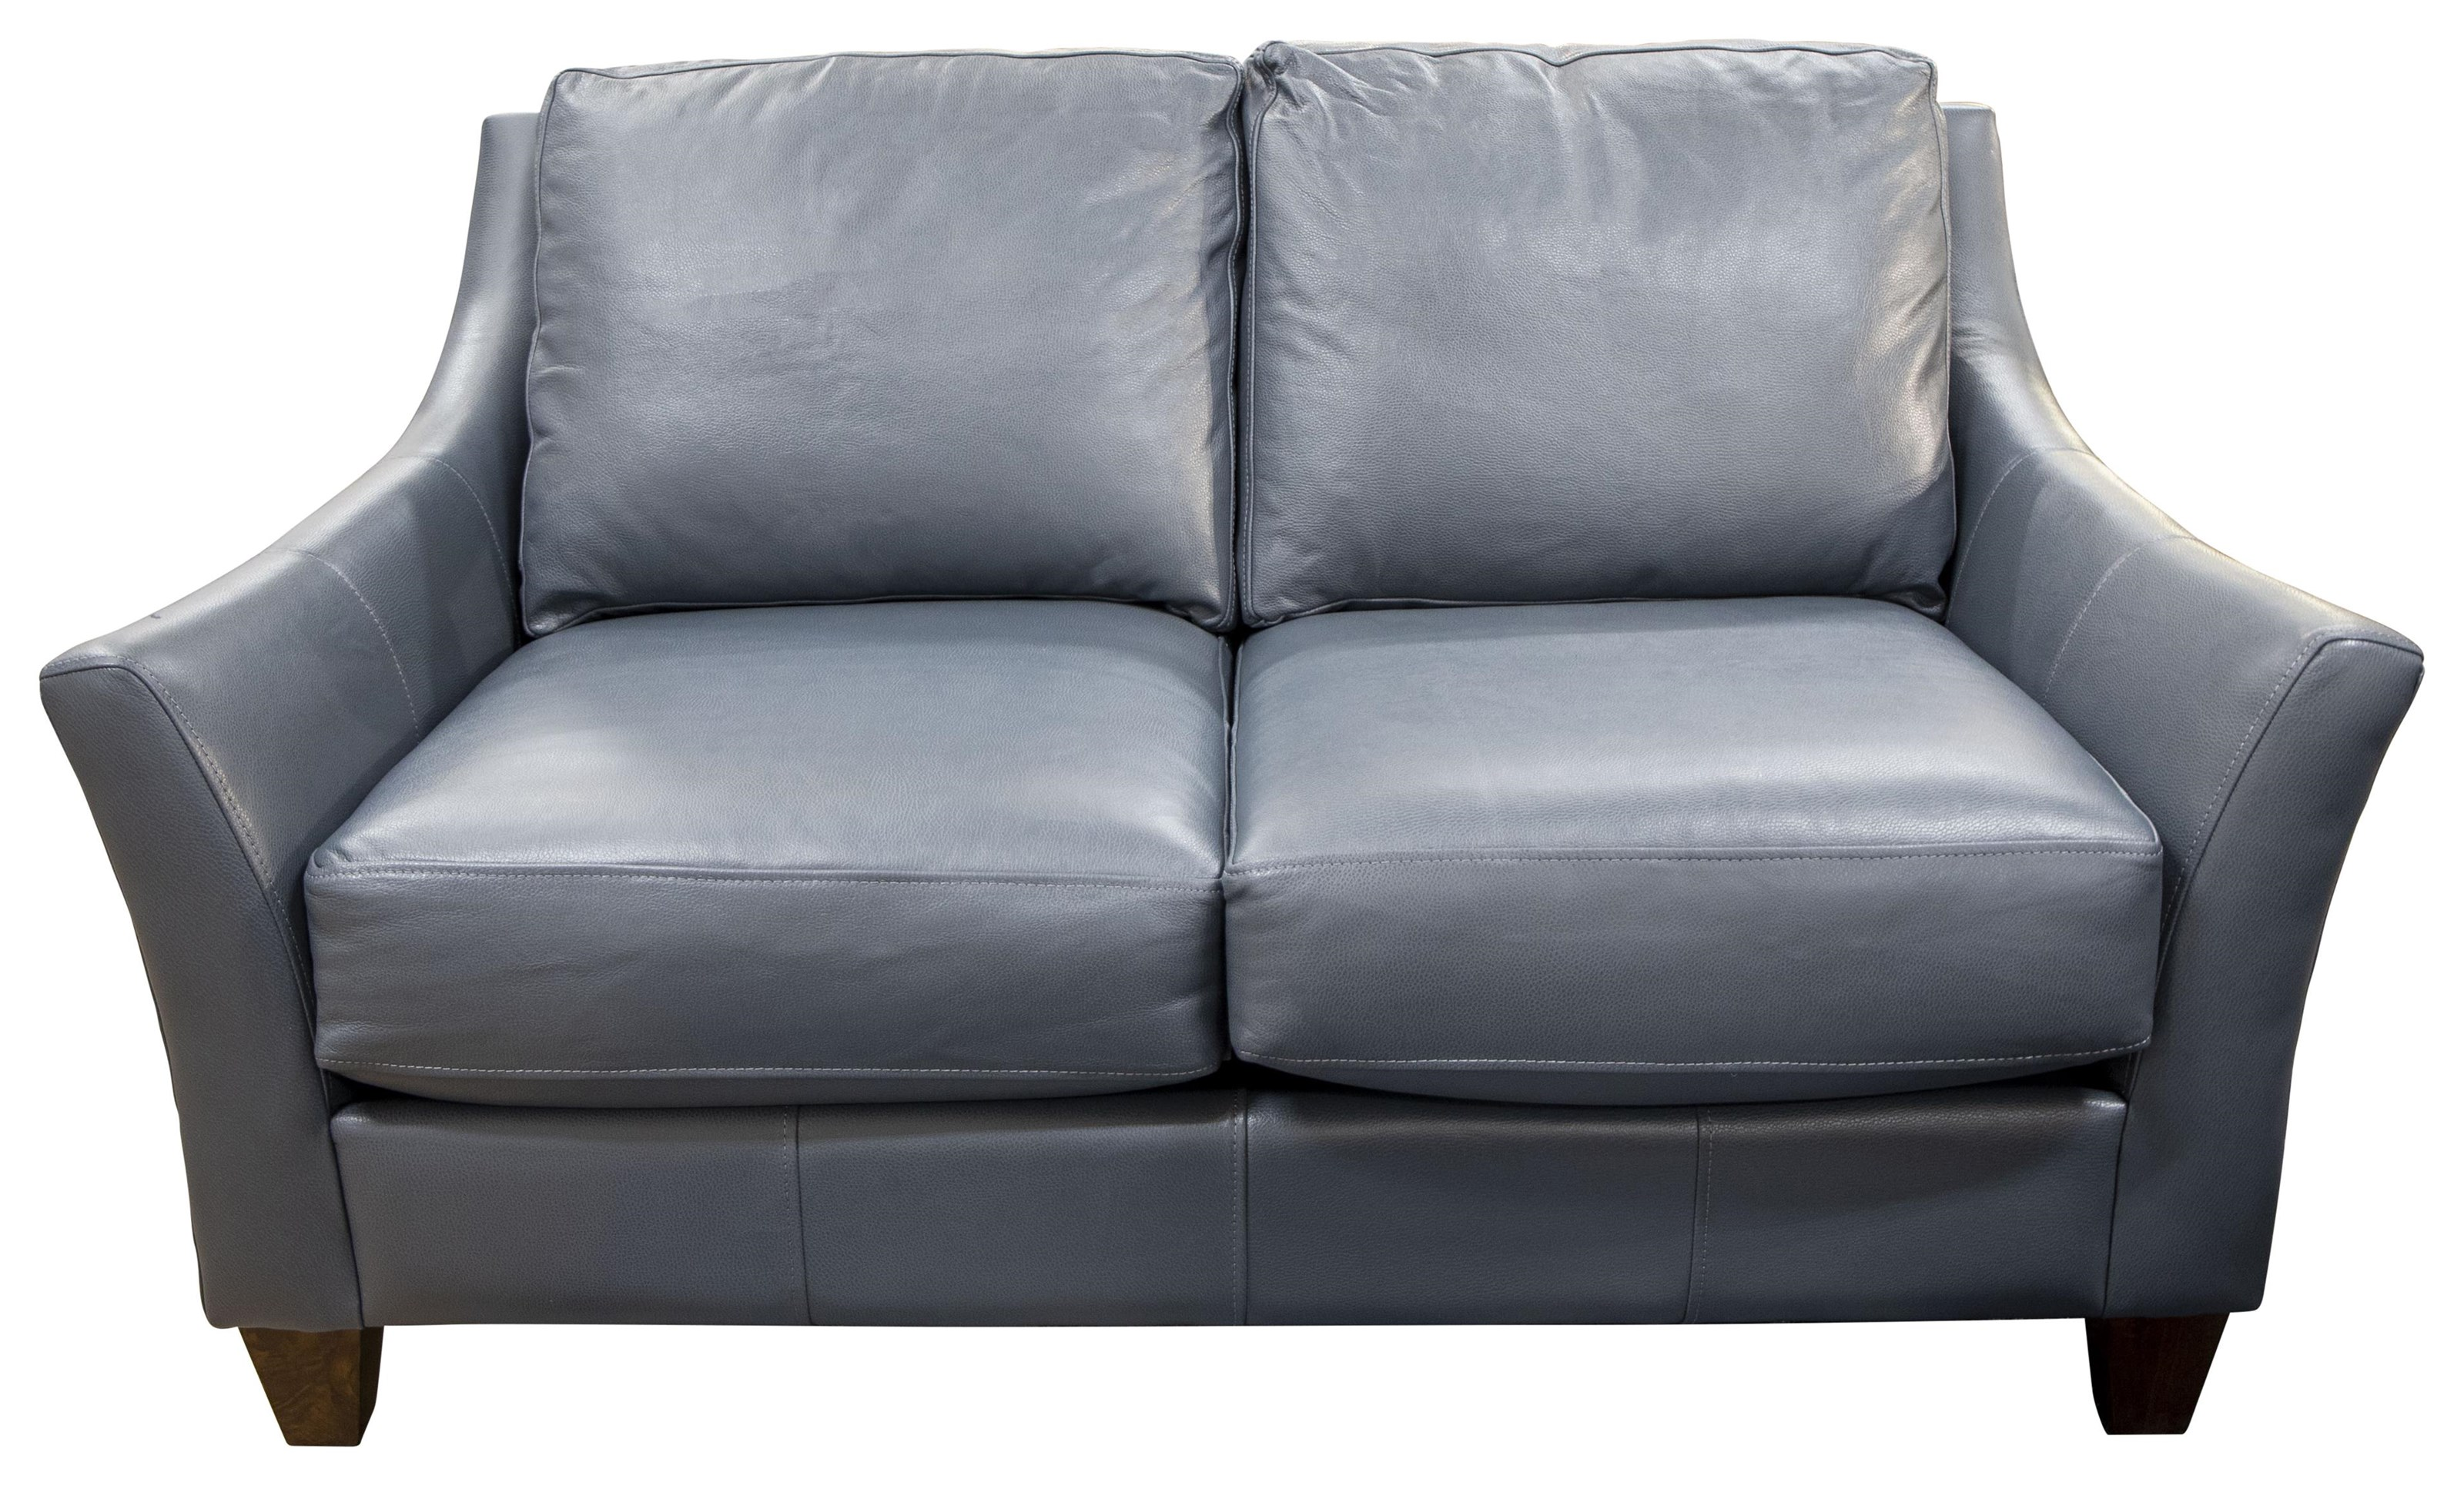 Miriam - Miriam  Leather Match Loveseat by Klaussner at Morris Home